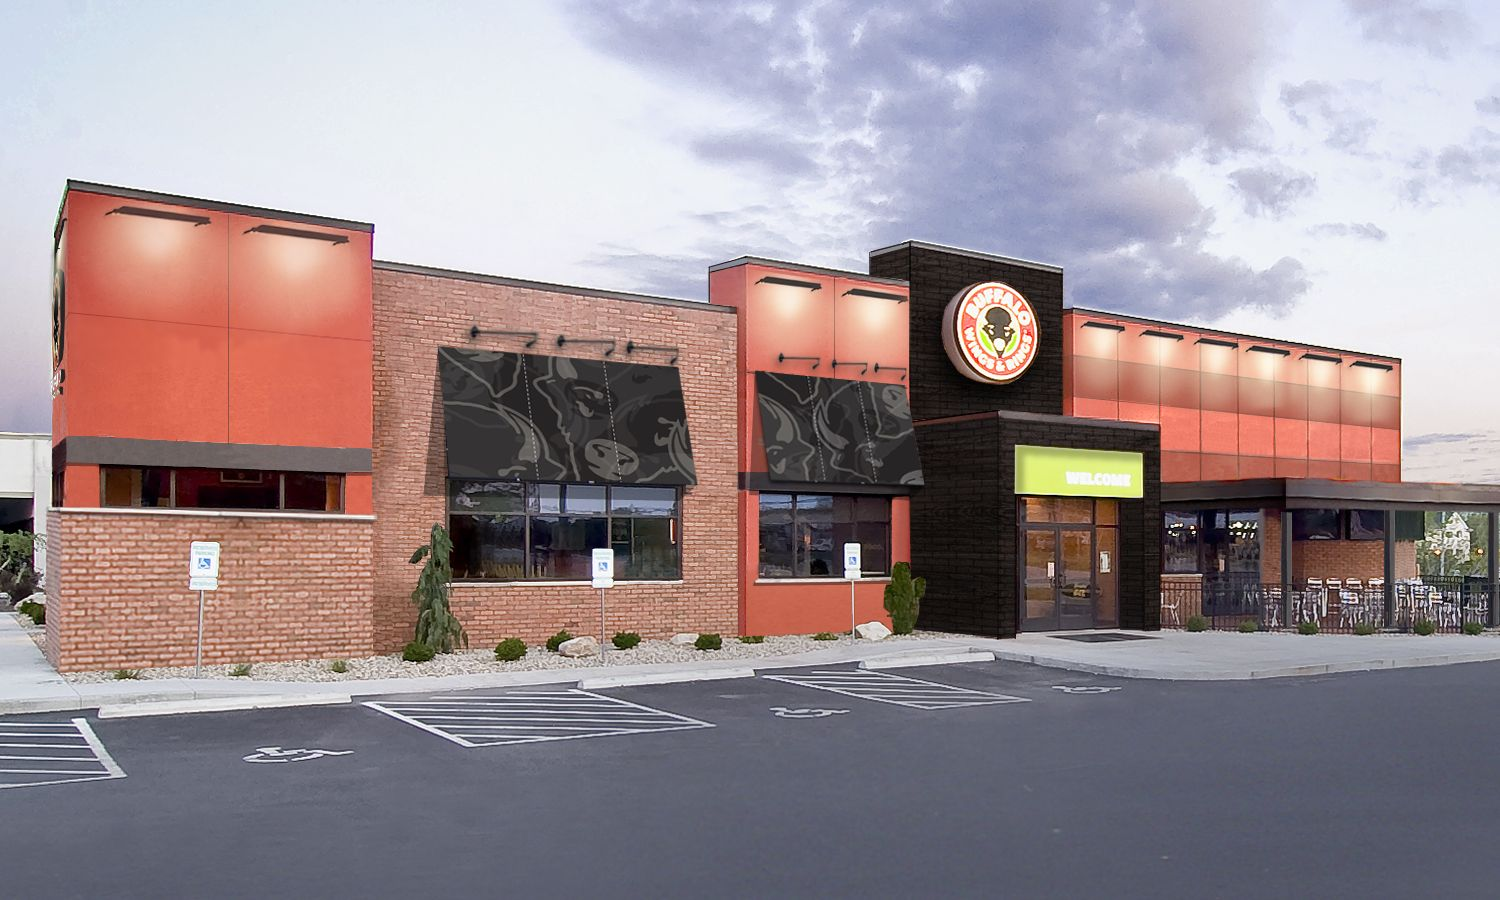 With More than 70 Locations Nationwide, Buffalo Wings & Rings Sets Sights on Huge Texas Expansion